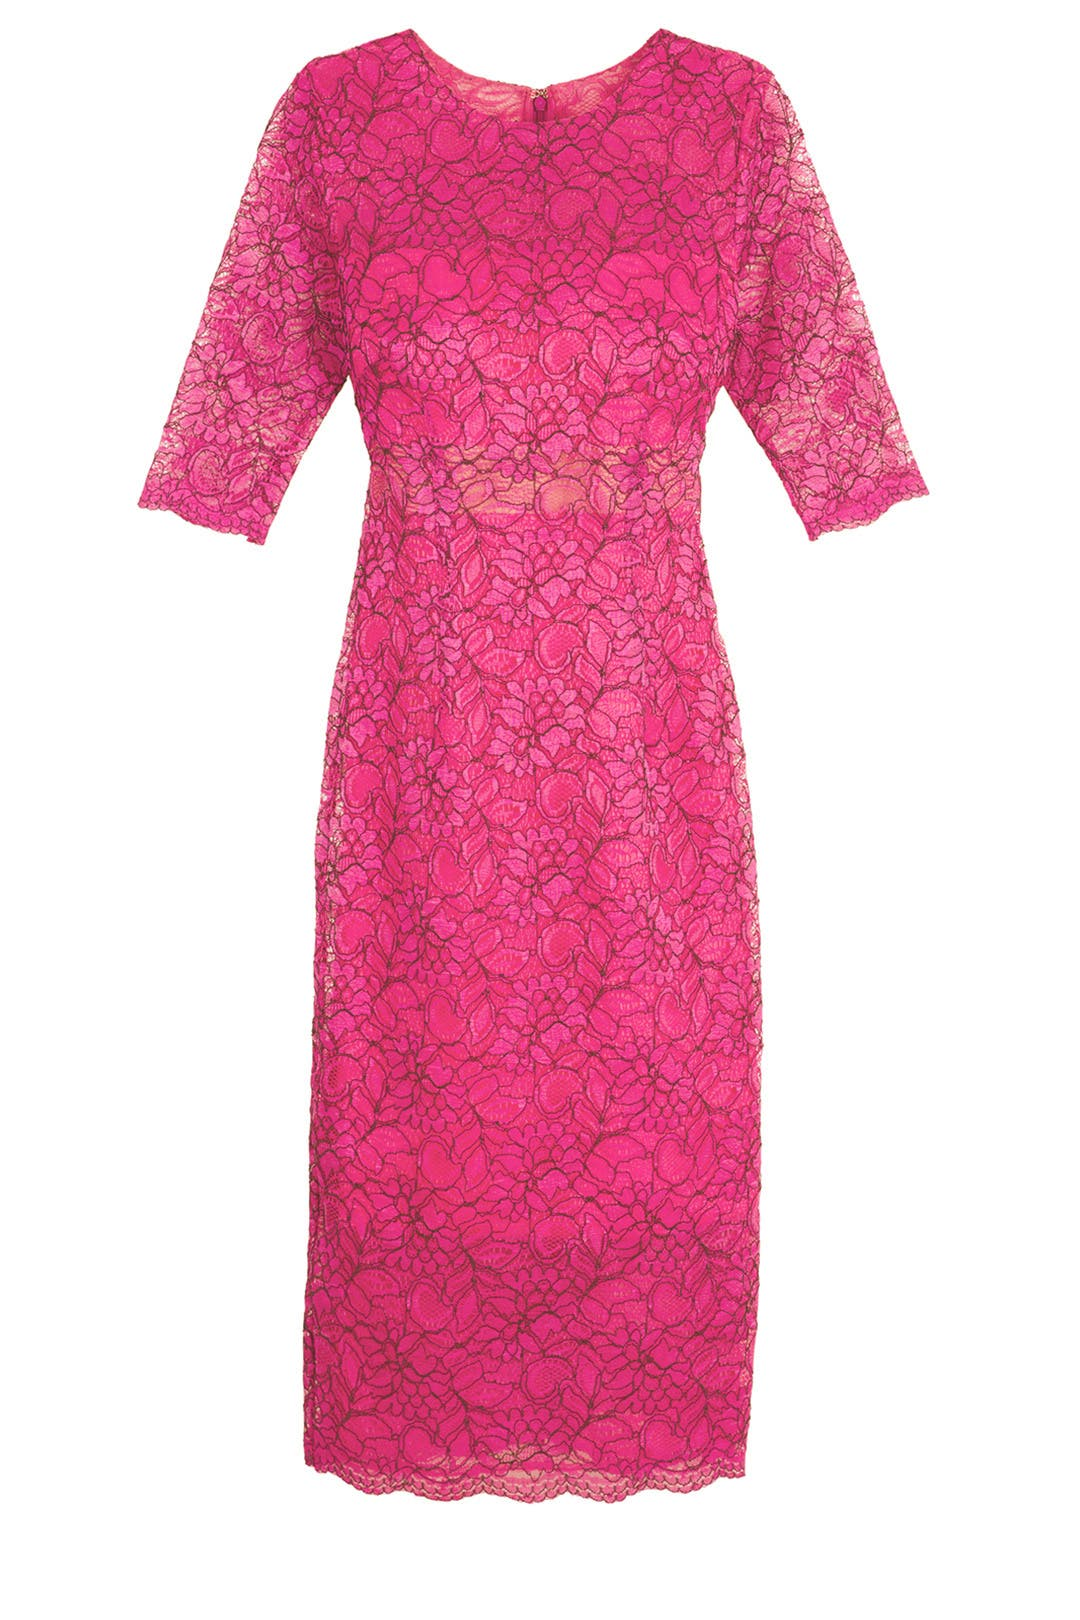 Sheer Lace Sheath by ML Monique Lhuillier for $86 | Rent the Runway